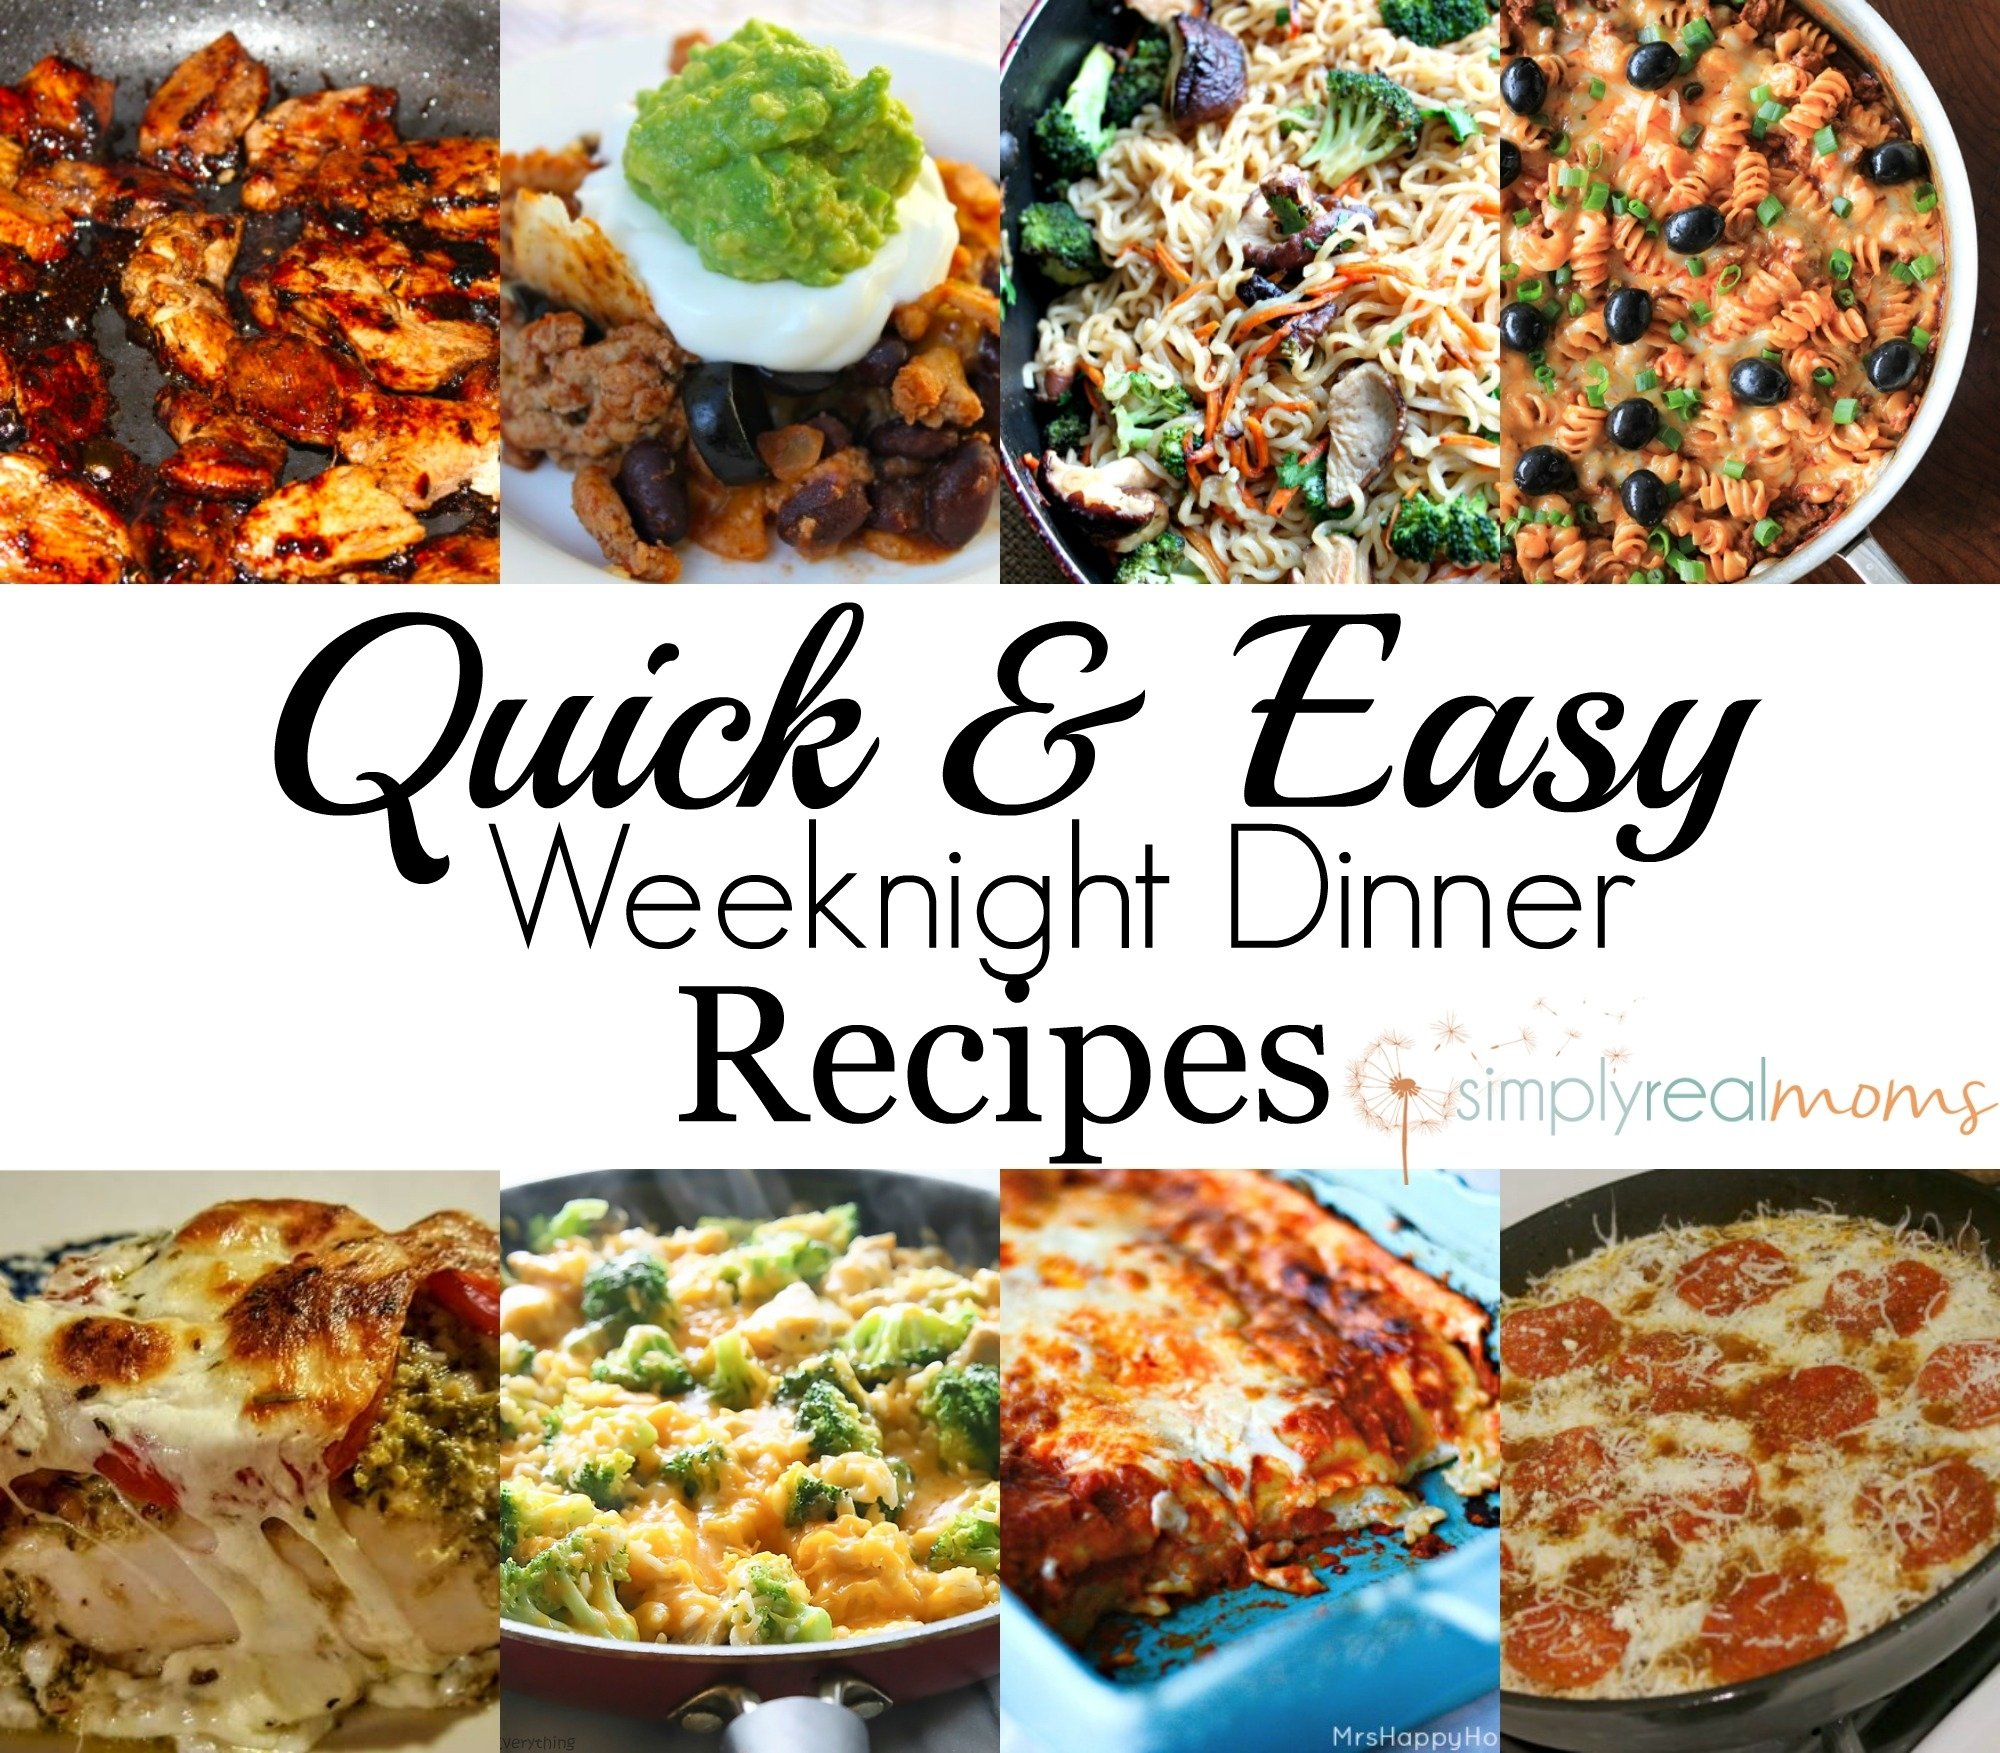 10 Famous Weeknight Dinner Ideas For Two easy weeknight dinner recipes simply real moms 2020